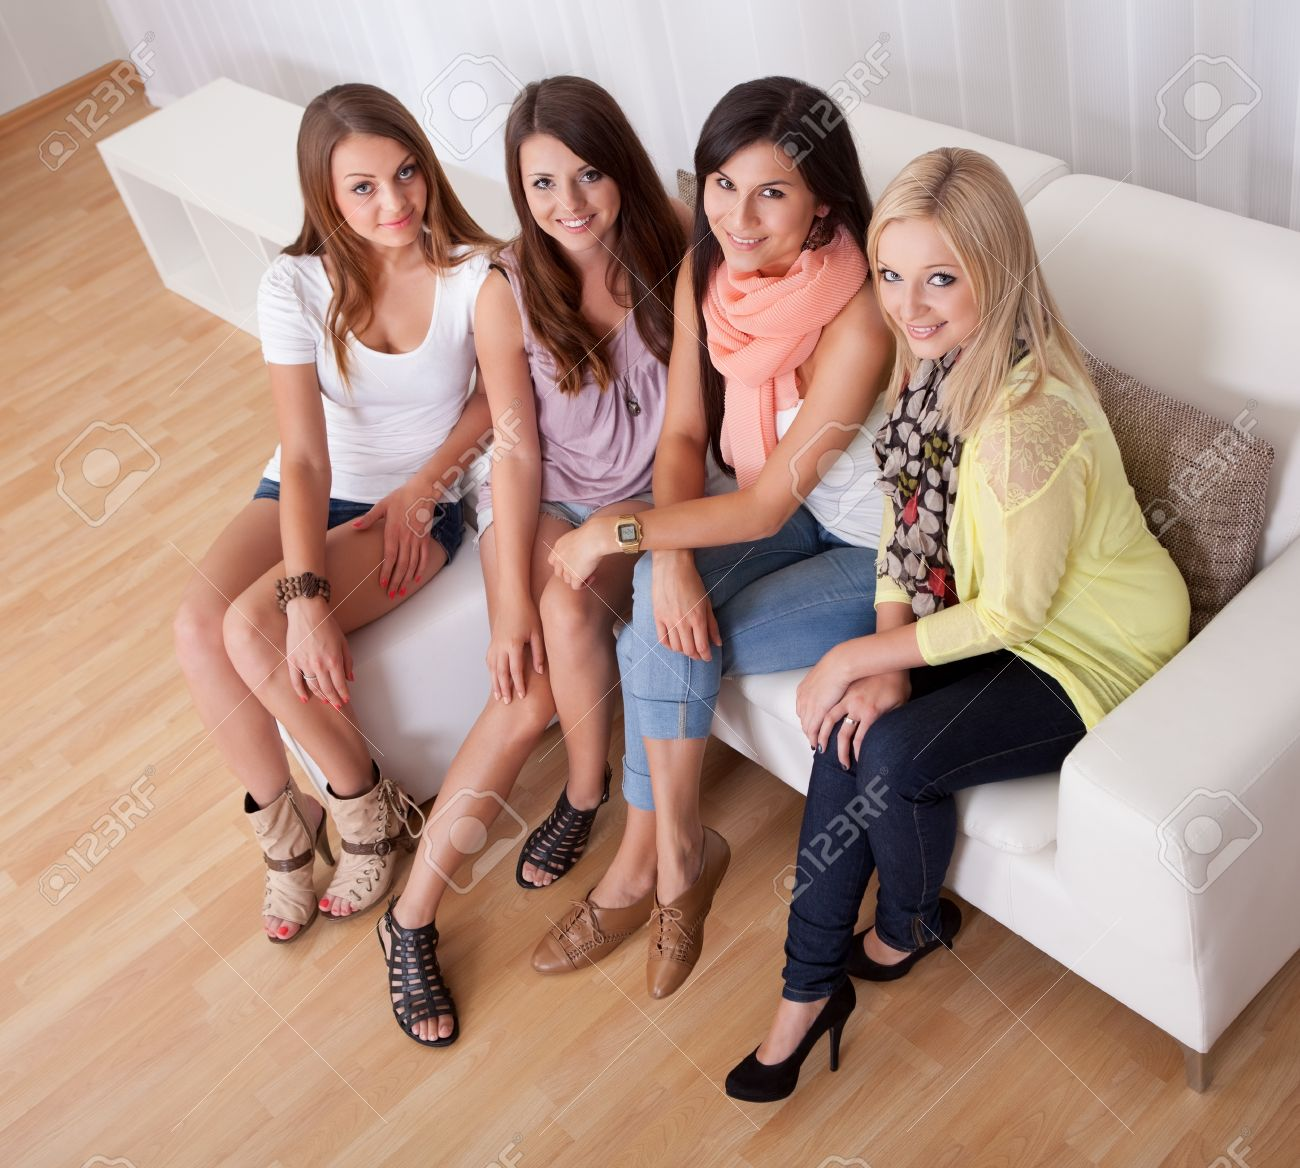 row of beautiful stylish young ladies sitting on a couch in a